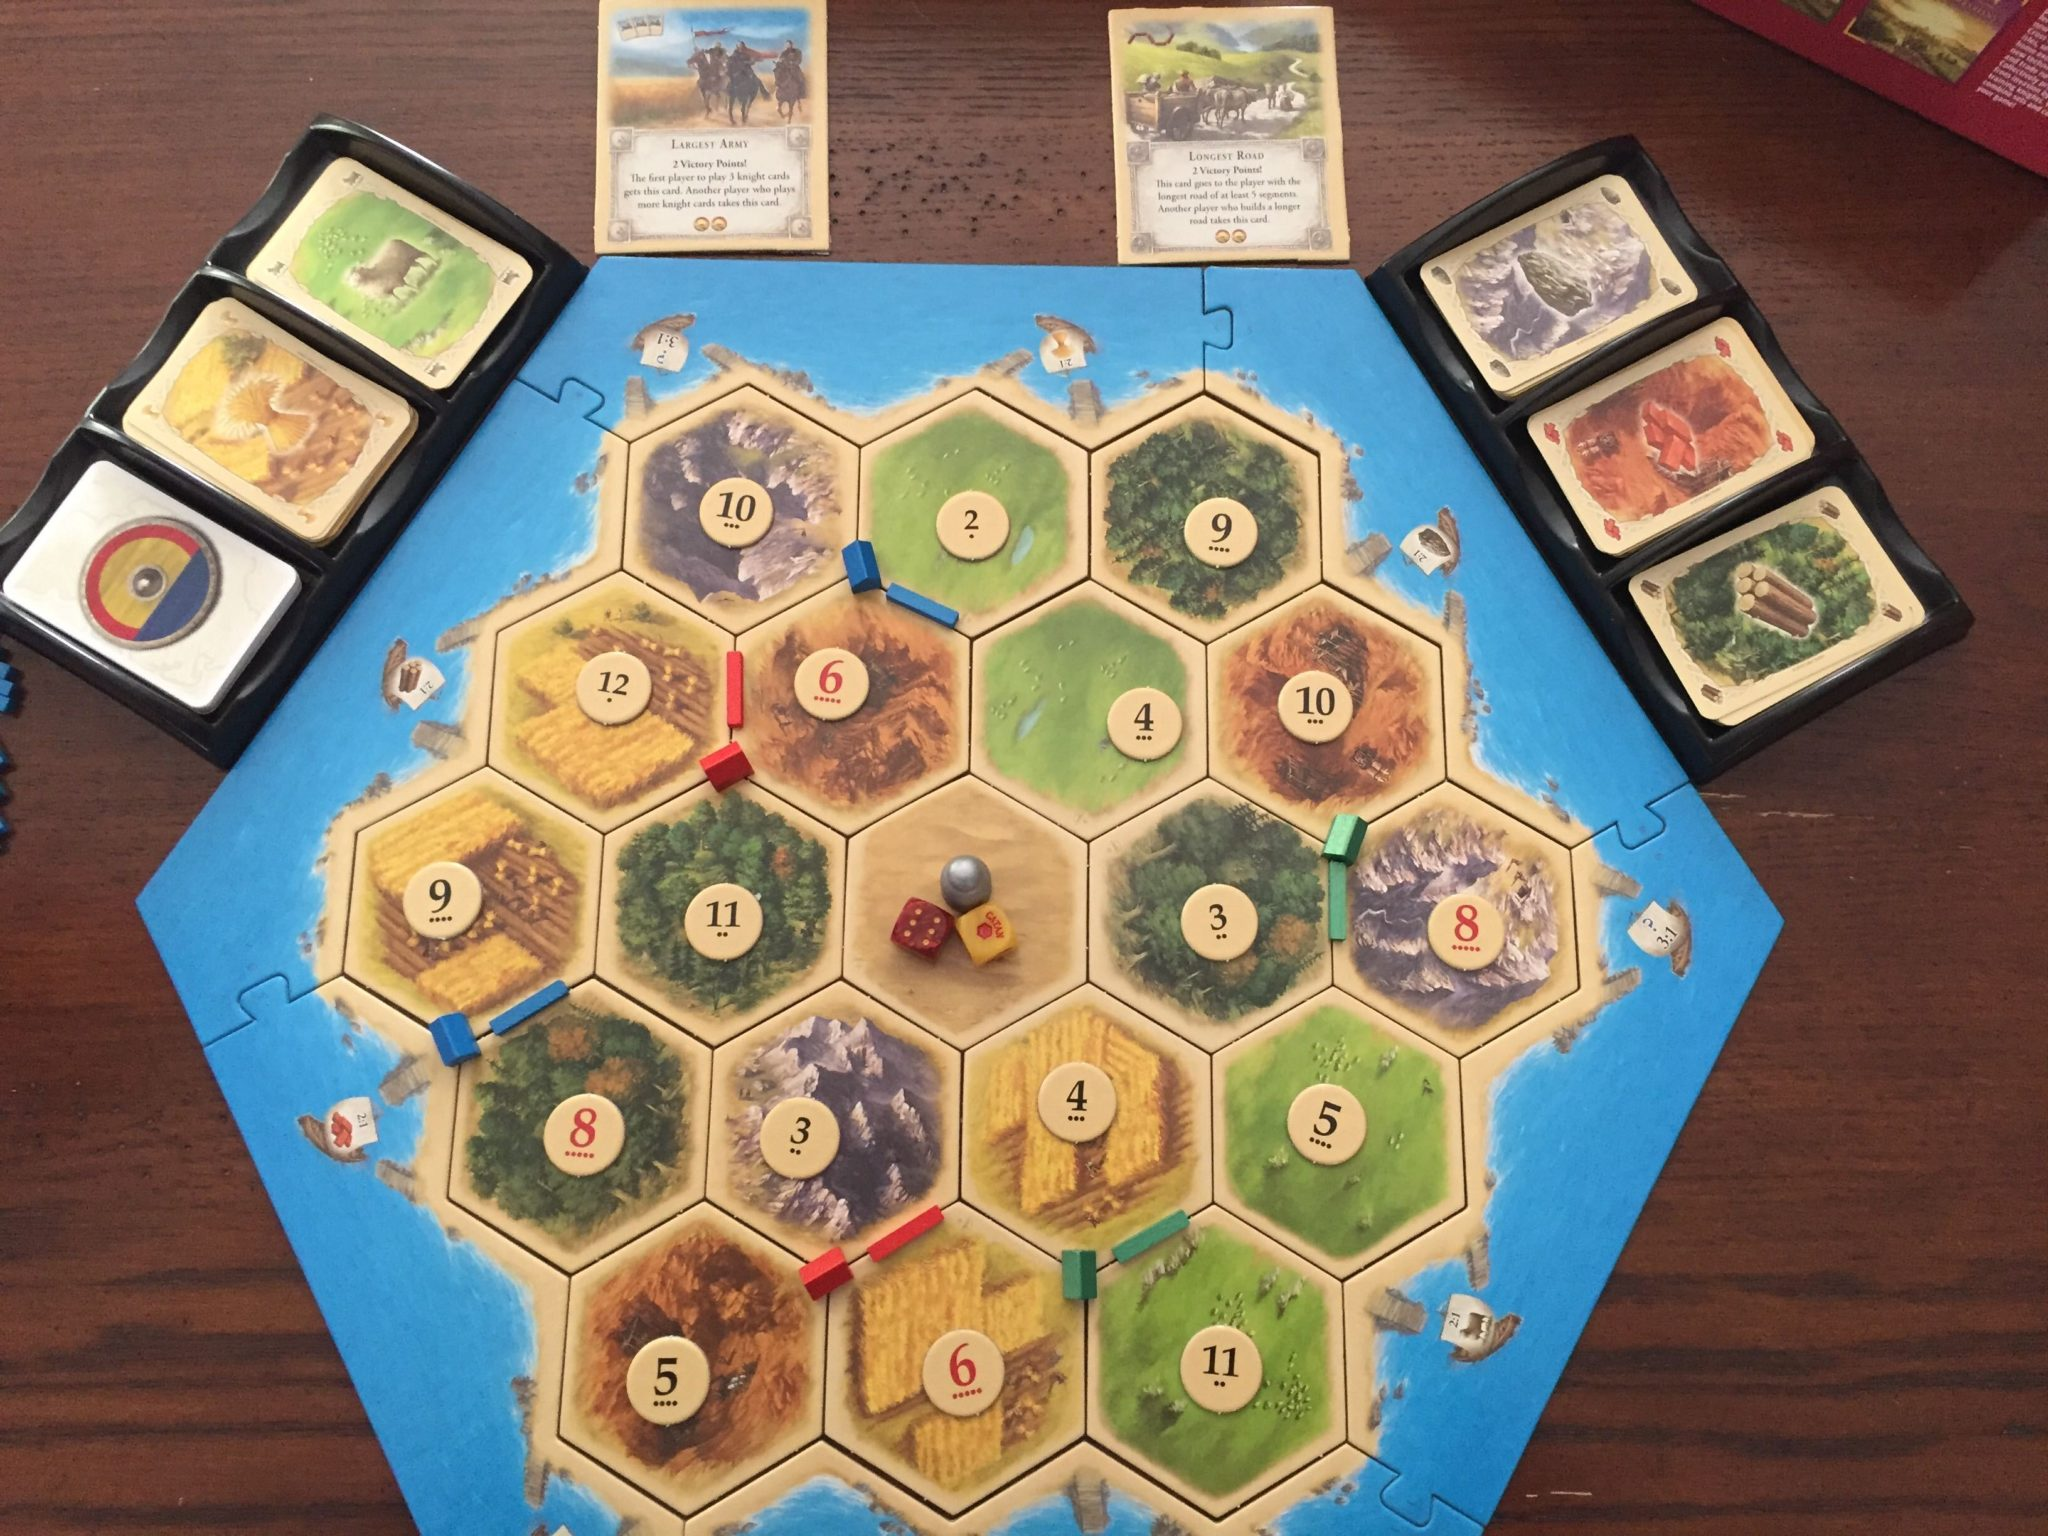 A game of Catan, set up for 3 players. Cards sit in trays at the top of the board.